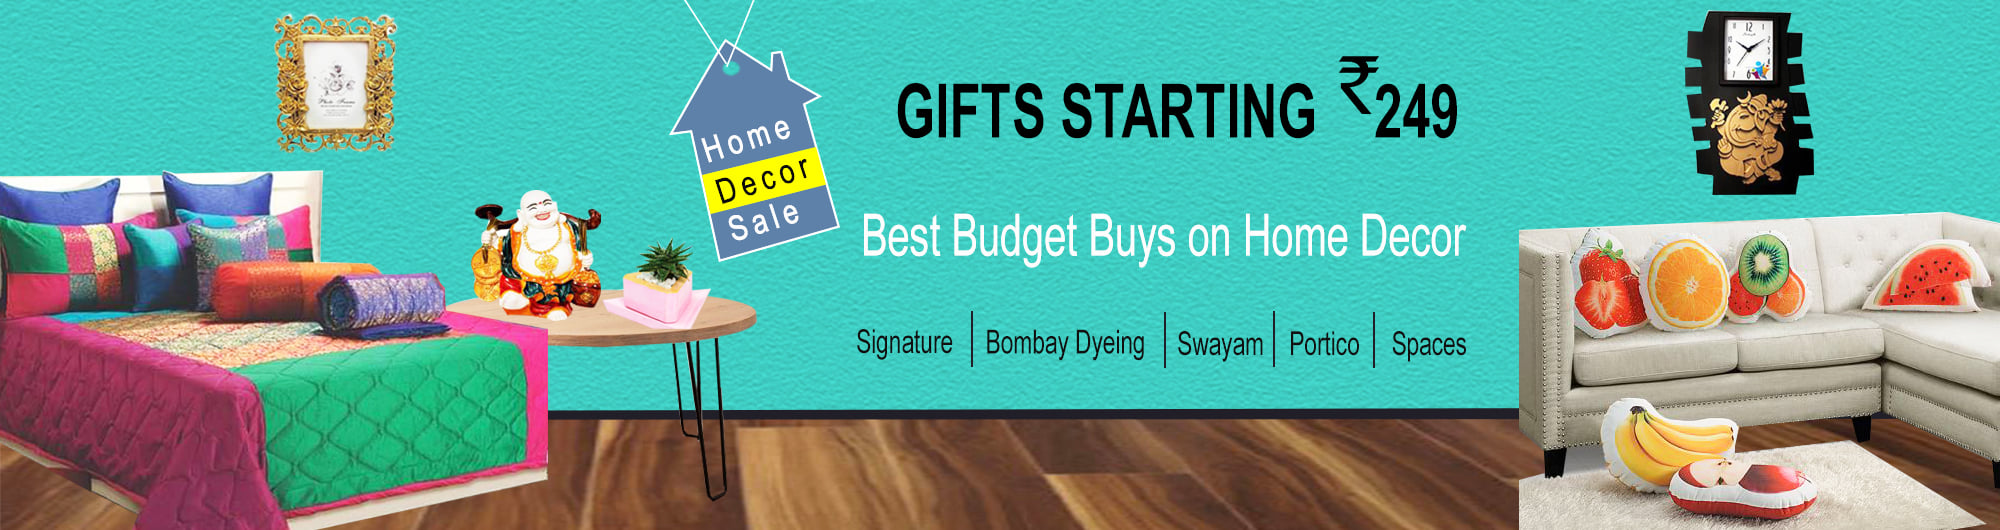 Home Decor Items at best prices